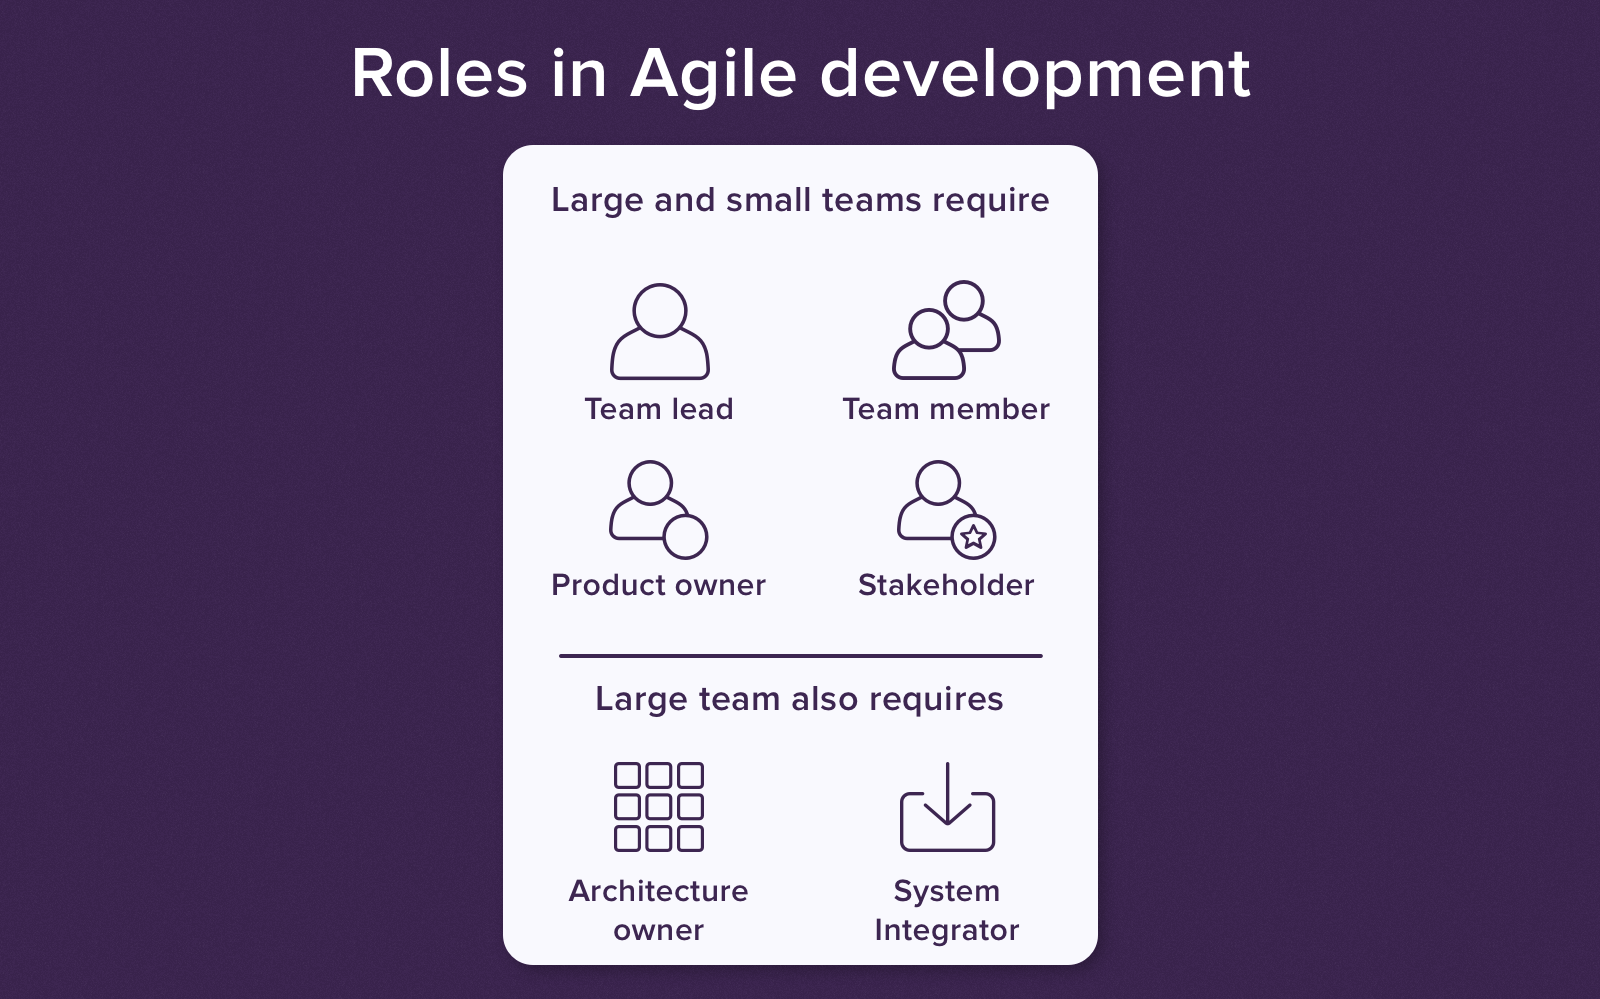 agile development team roles